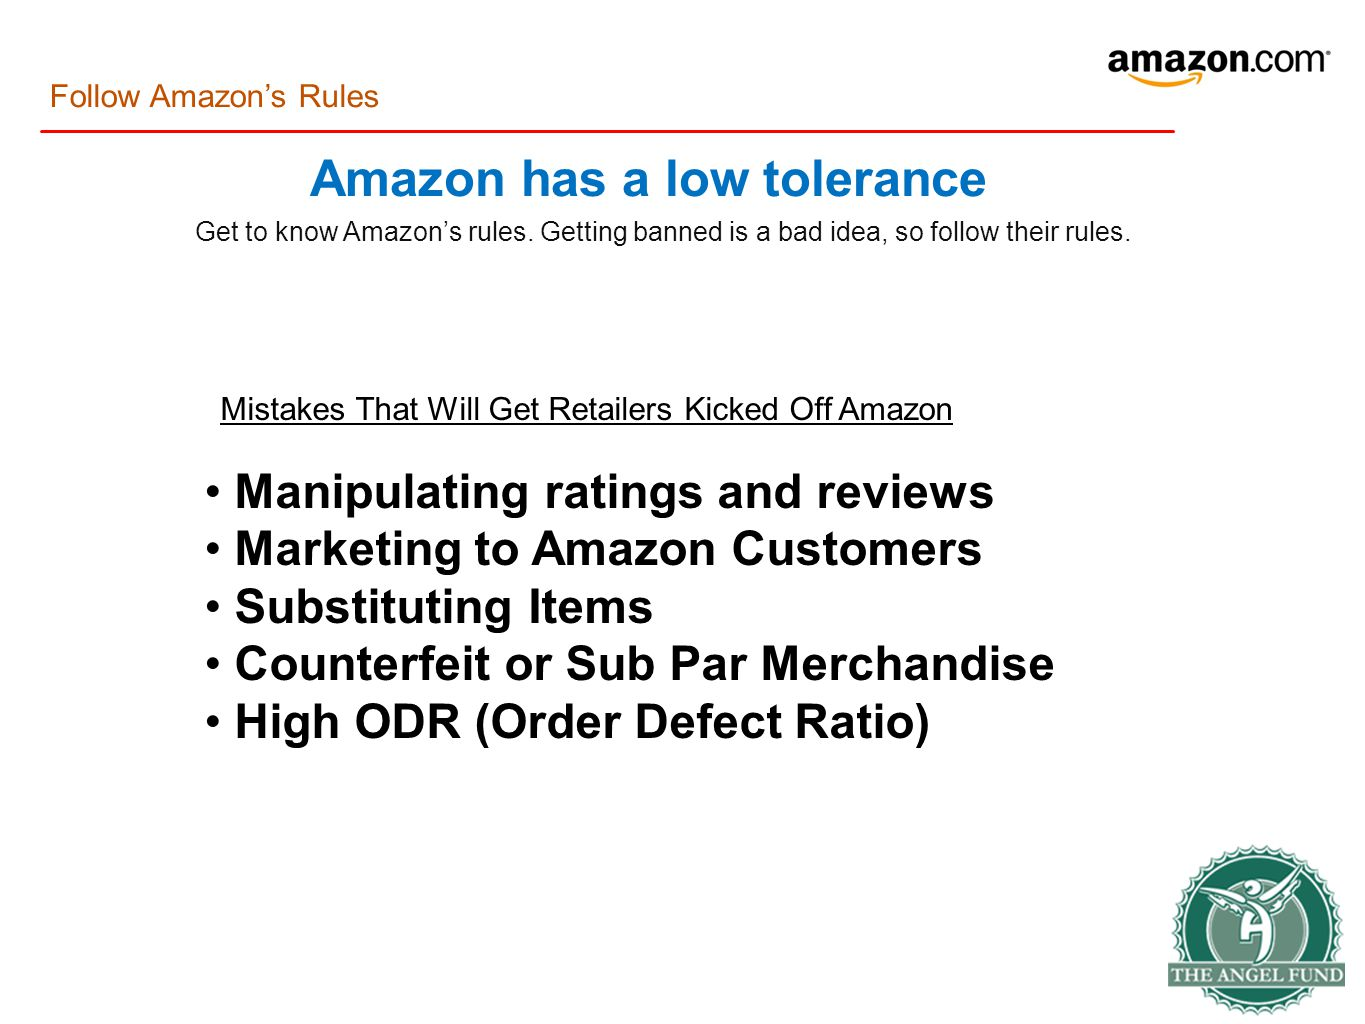 Get to know Amazon's rules. Getting banned is a bad idea, so follow their rules.